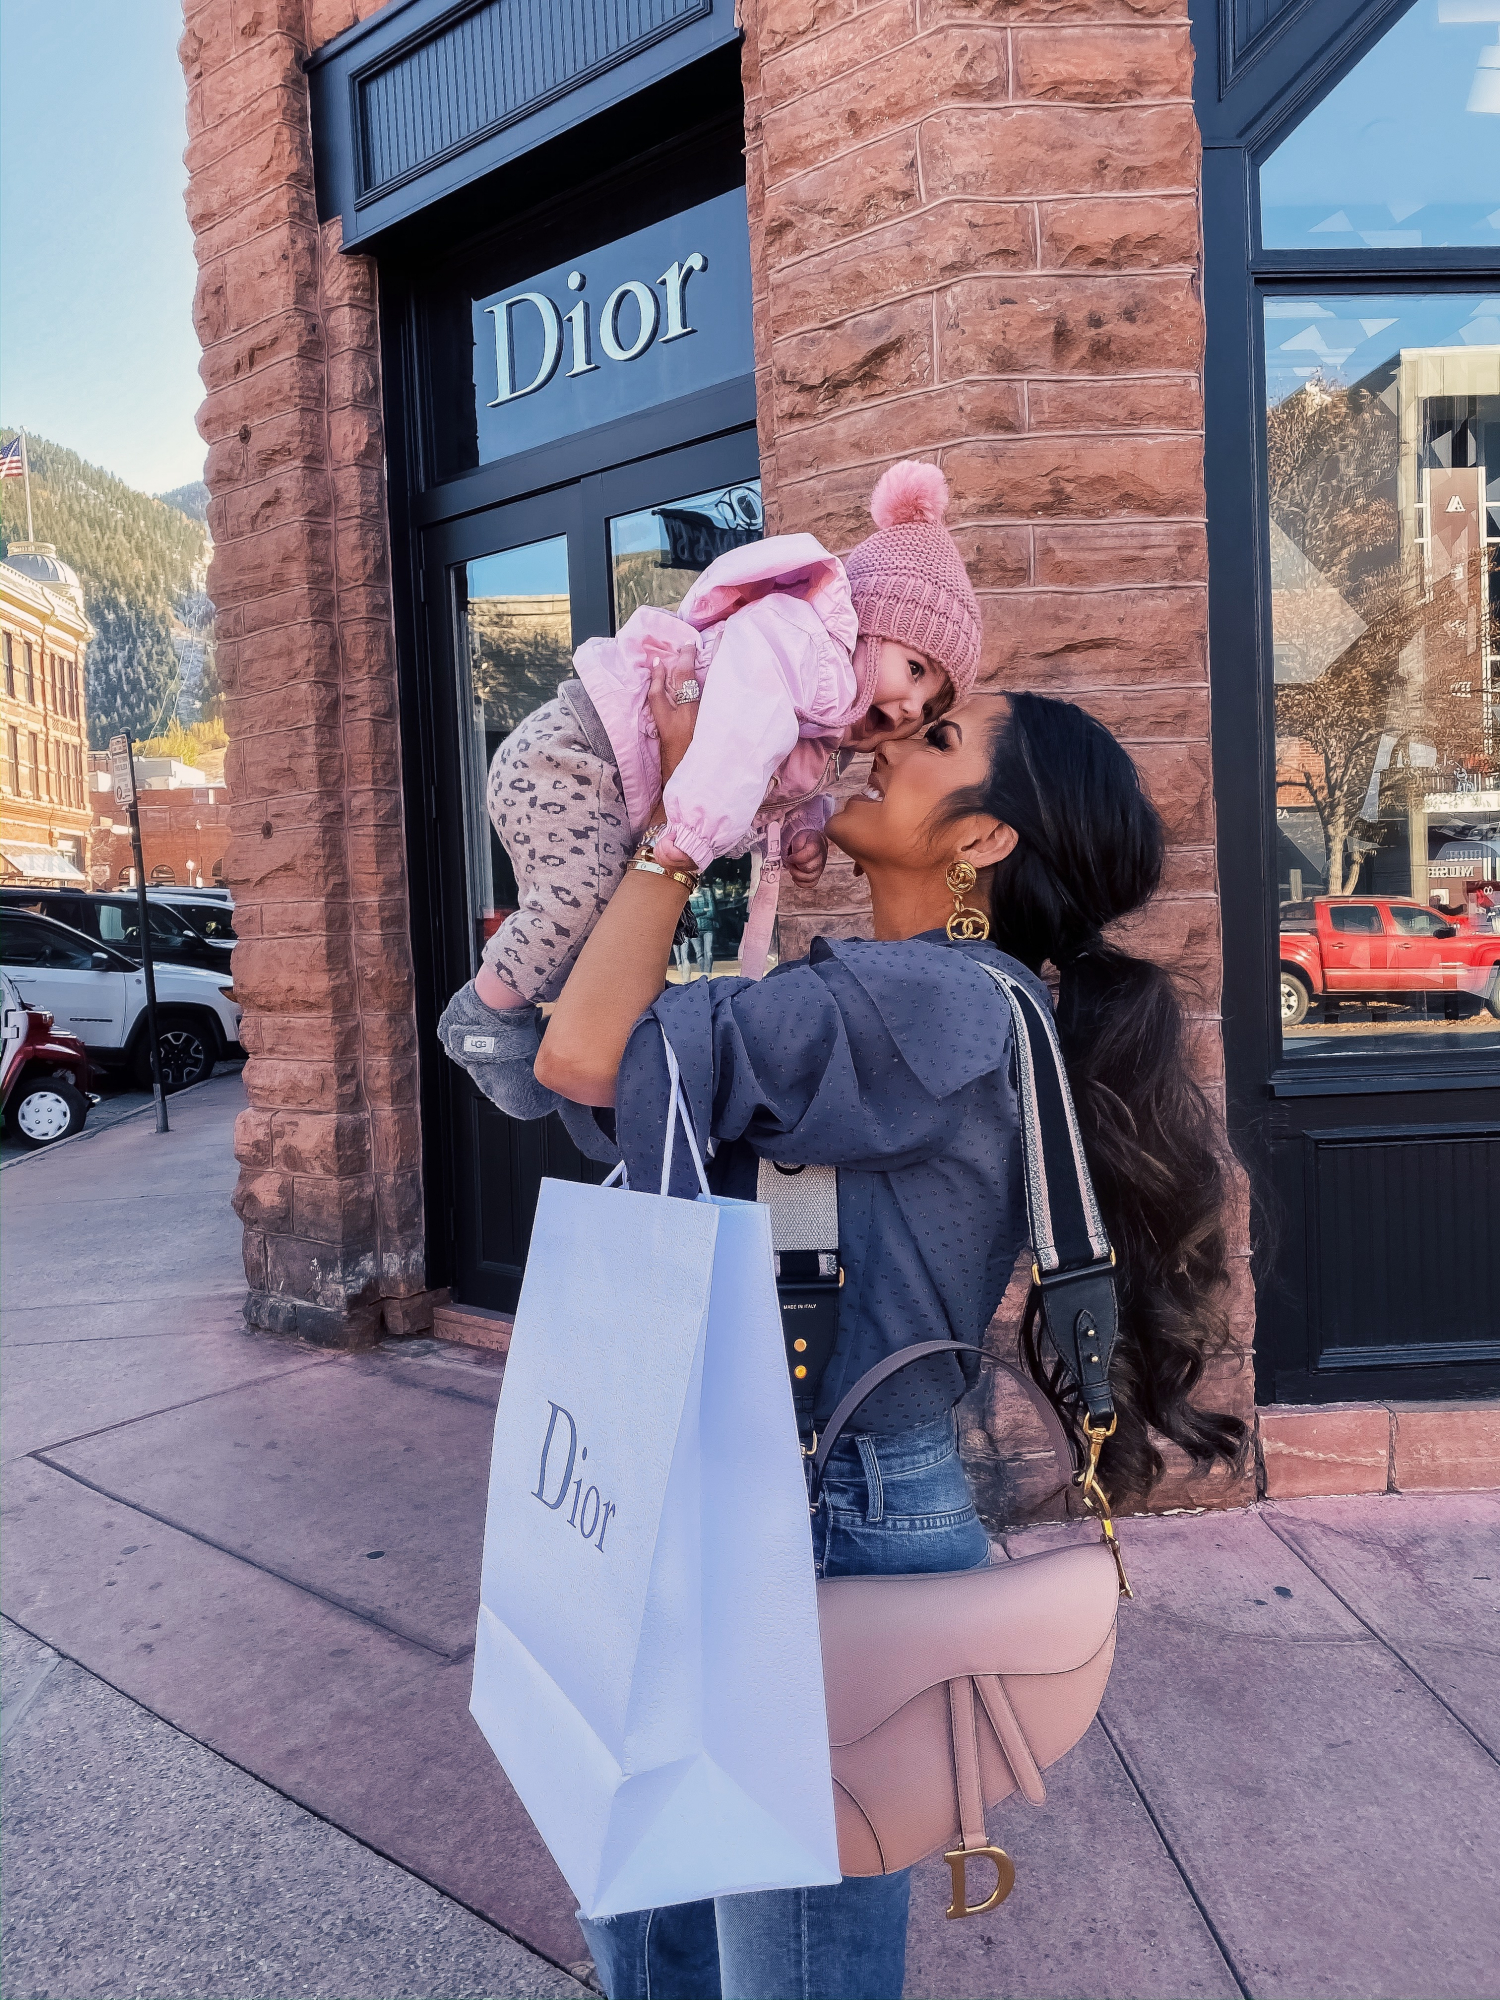 baby girl fashionista, dior in aspen, dior nude saddle bag, emily gemma | A YEAR IN REVIEW : MASSIVE 2019 INSTAGRAM RECAP by popular Oklahoma life and style blog, The Sweetest Thing: image of a woman holding her baby outside a Dior store in Aspen, Colorado and wearing Chanel earrings, Nordstrom Tie Neck Dobby Blouse TOPSHOP, and Nordstrom The Tripper High Waist Crop Bootcut Jeans MOTHER.